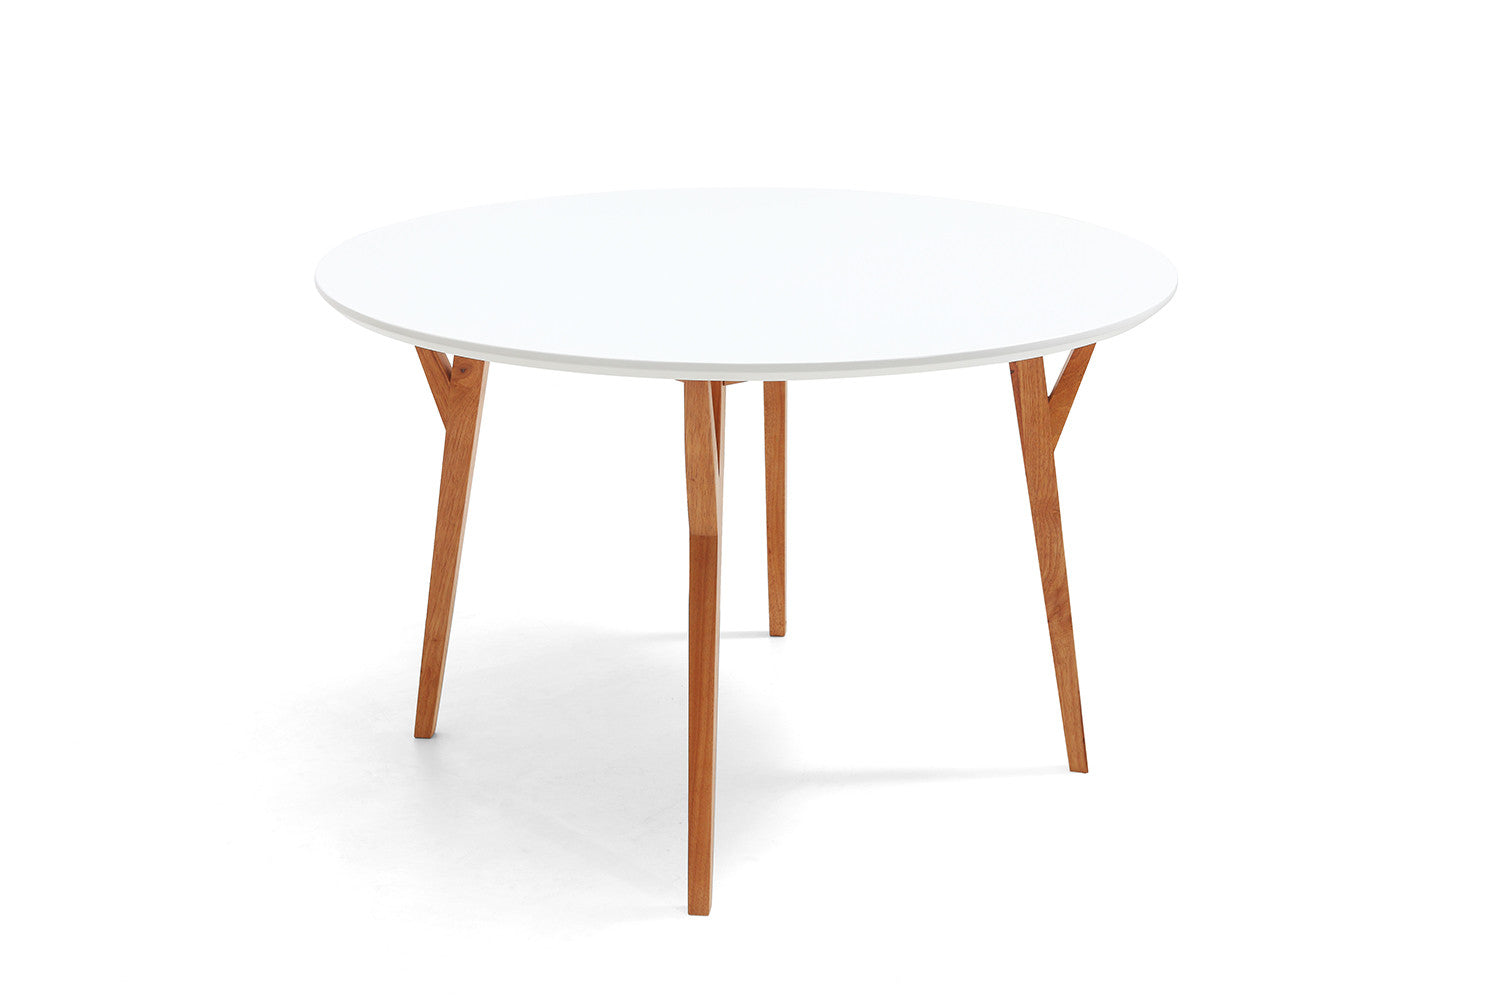 Table de salle manger ronde design scandinave moesa for Table a salle a manger design